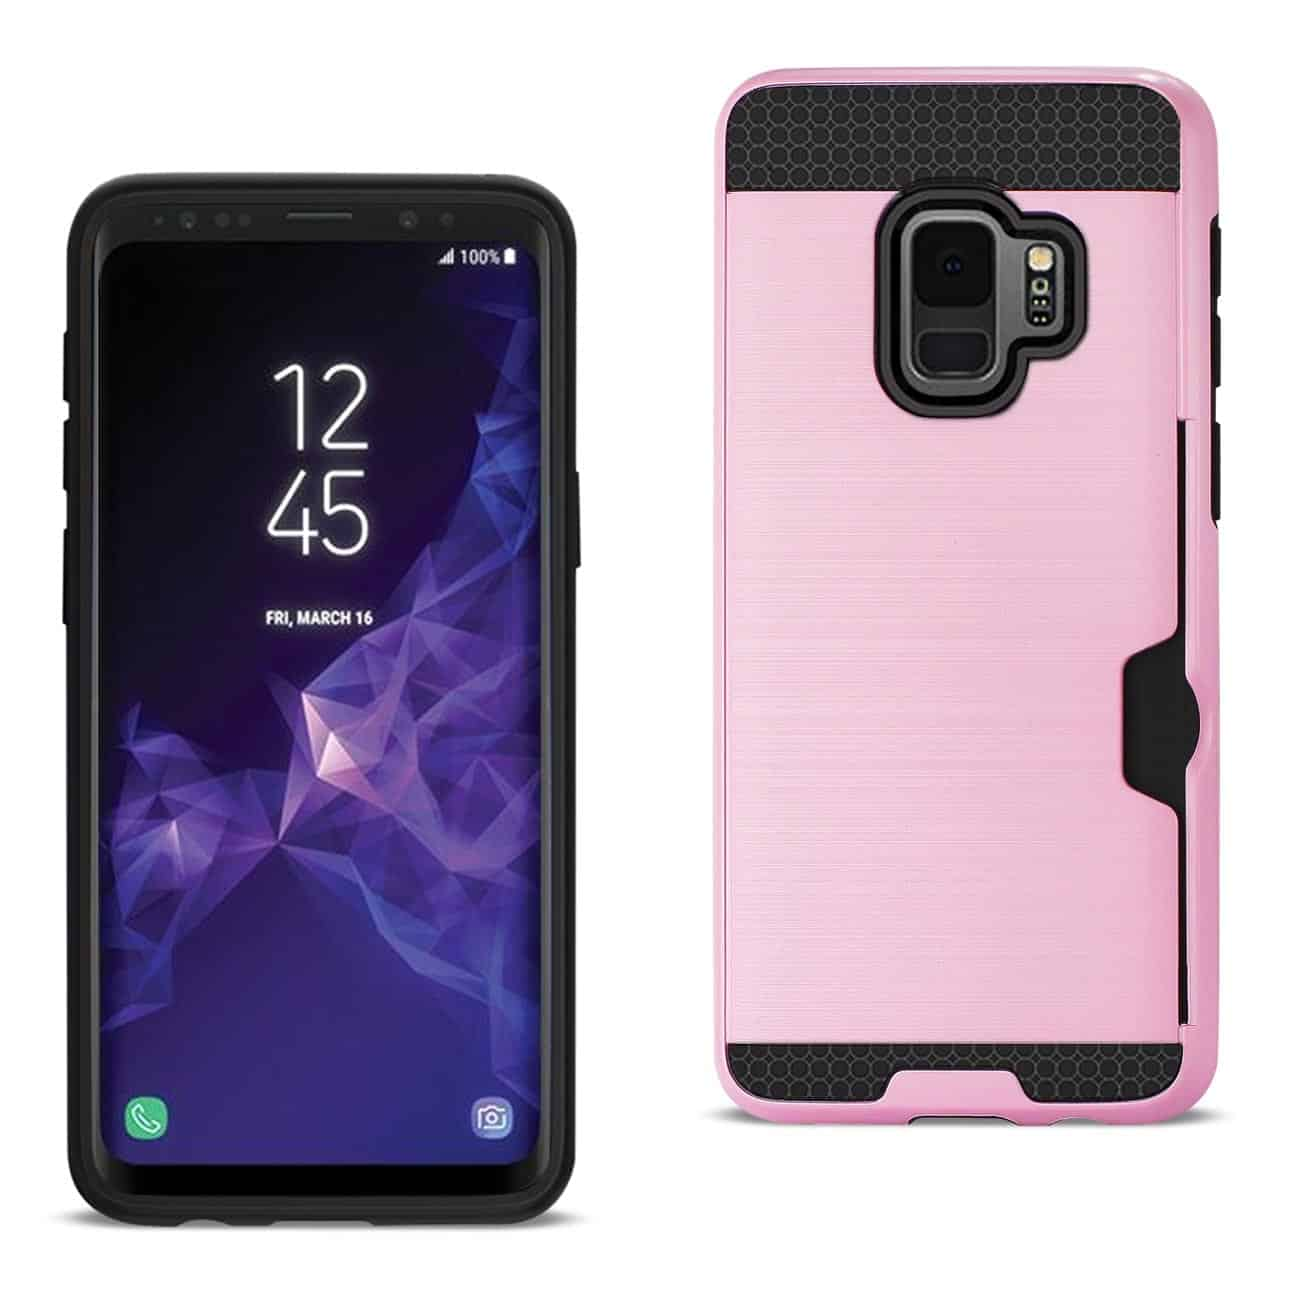 Samsung Galaxy S9 Slim Armor Hybrid Case With Card Holder In Pink